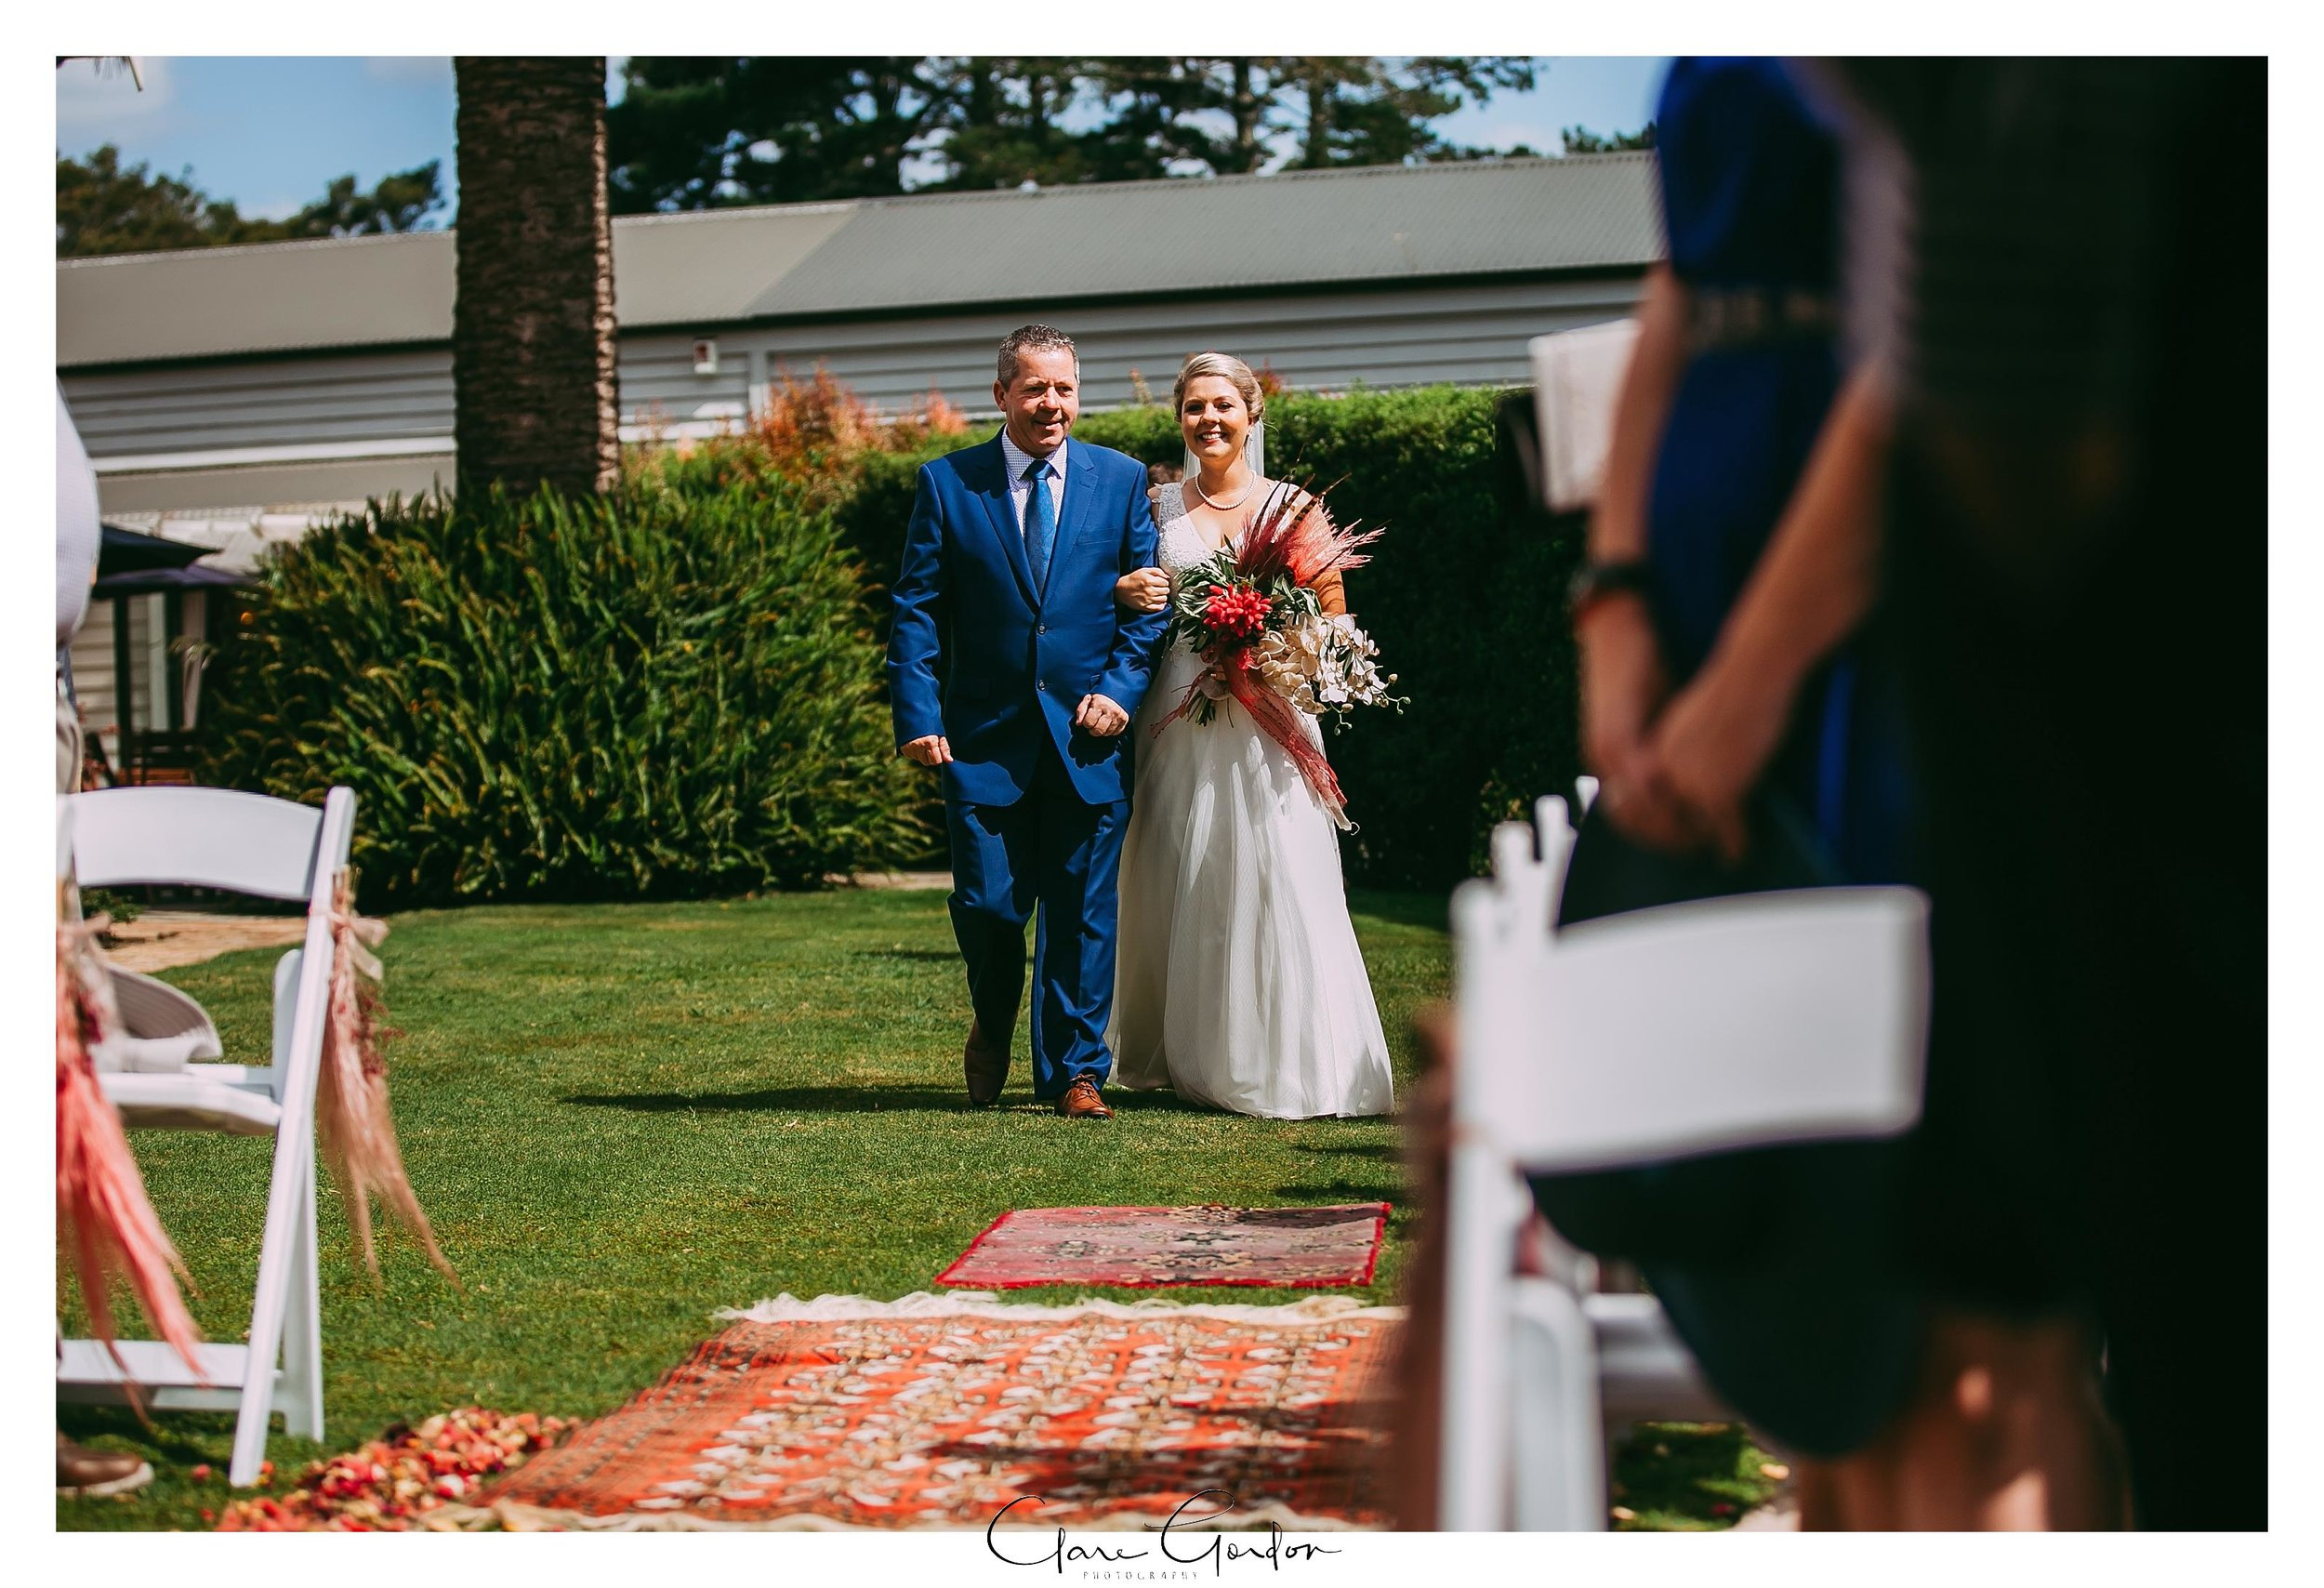 Charlemagne-Lodge-Tauranga-wedding-photo (85).jpg